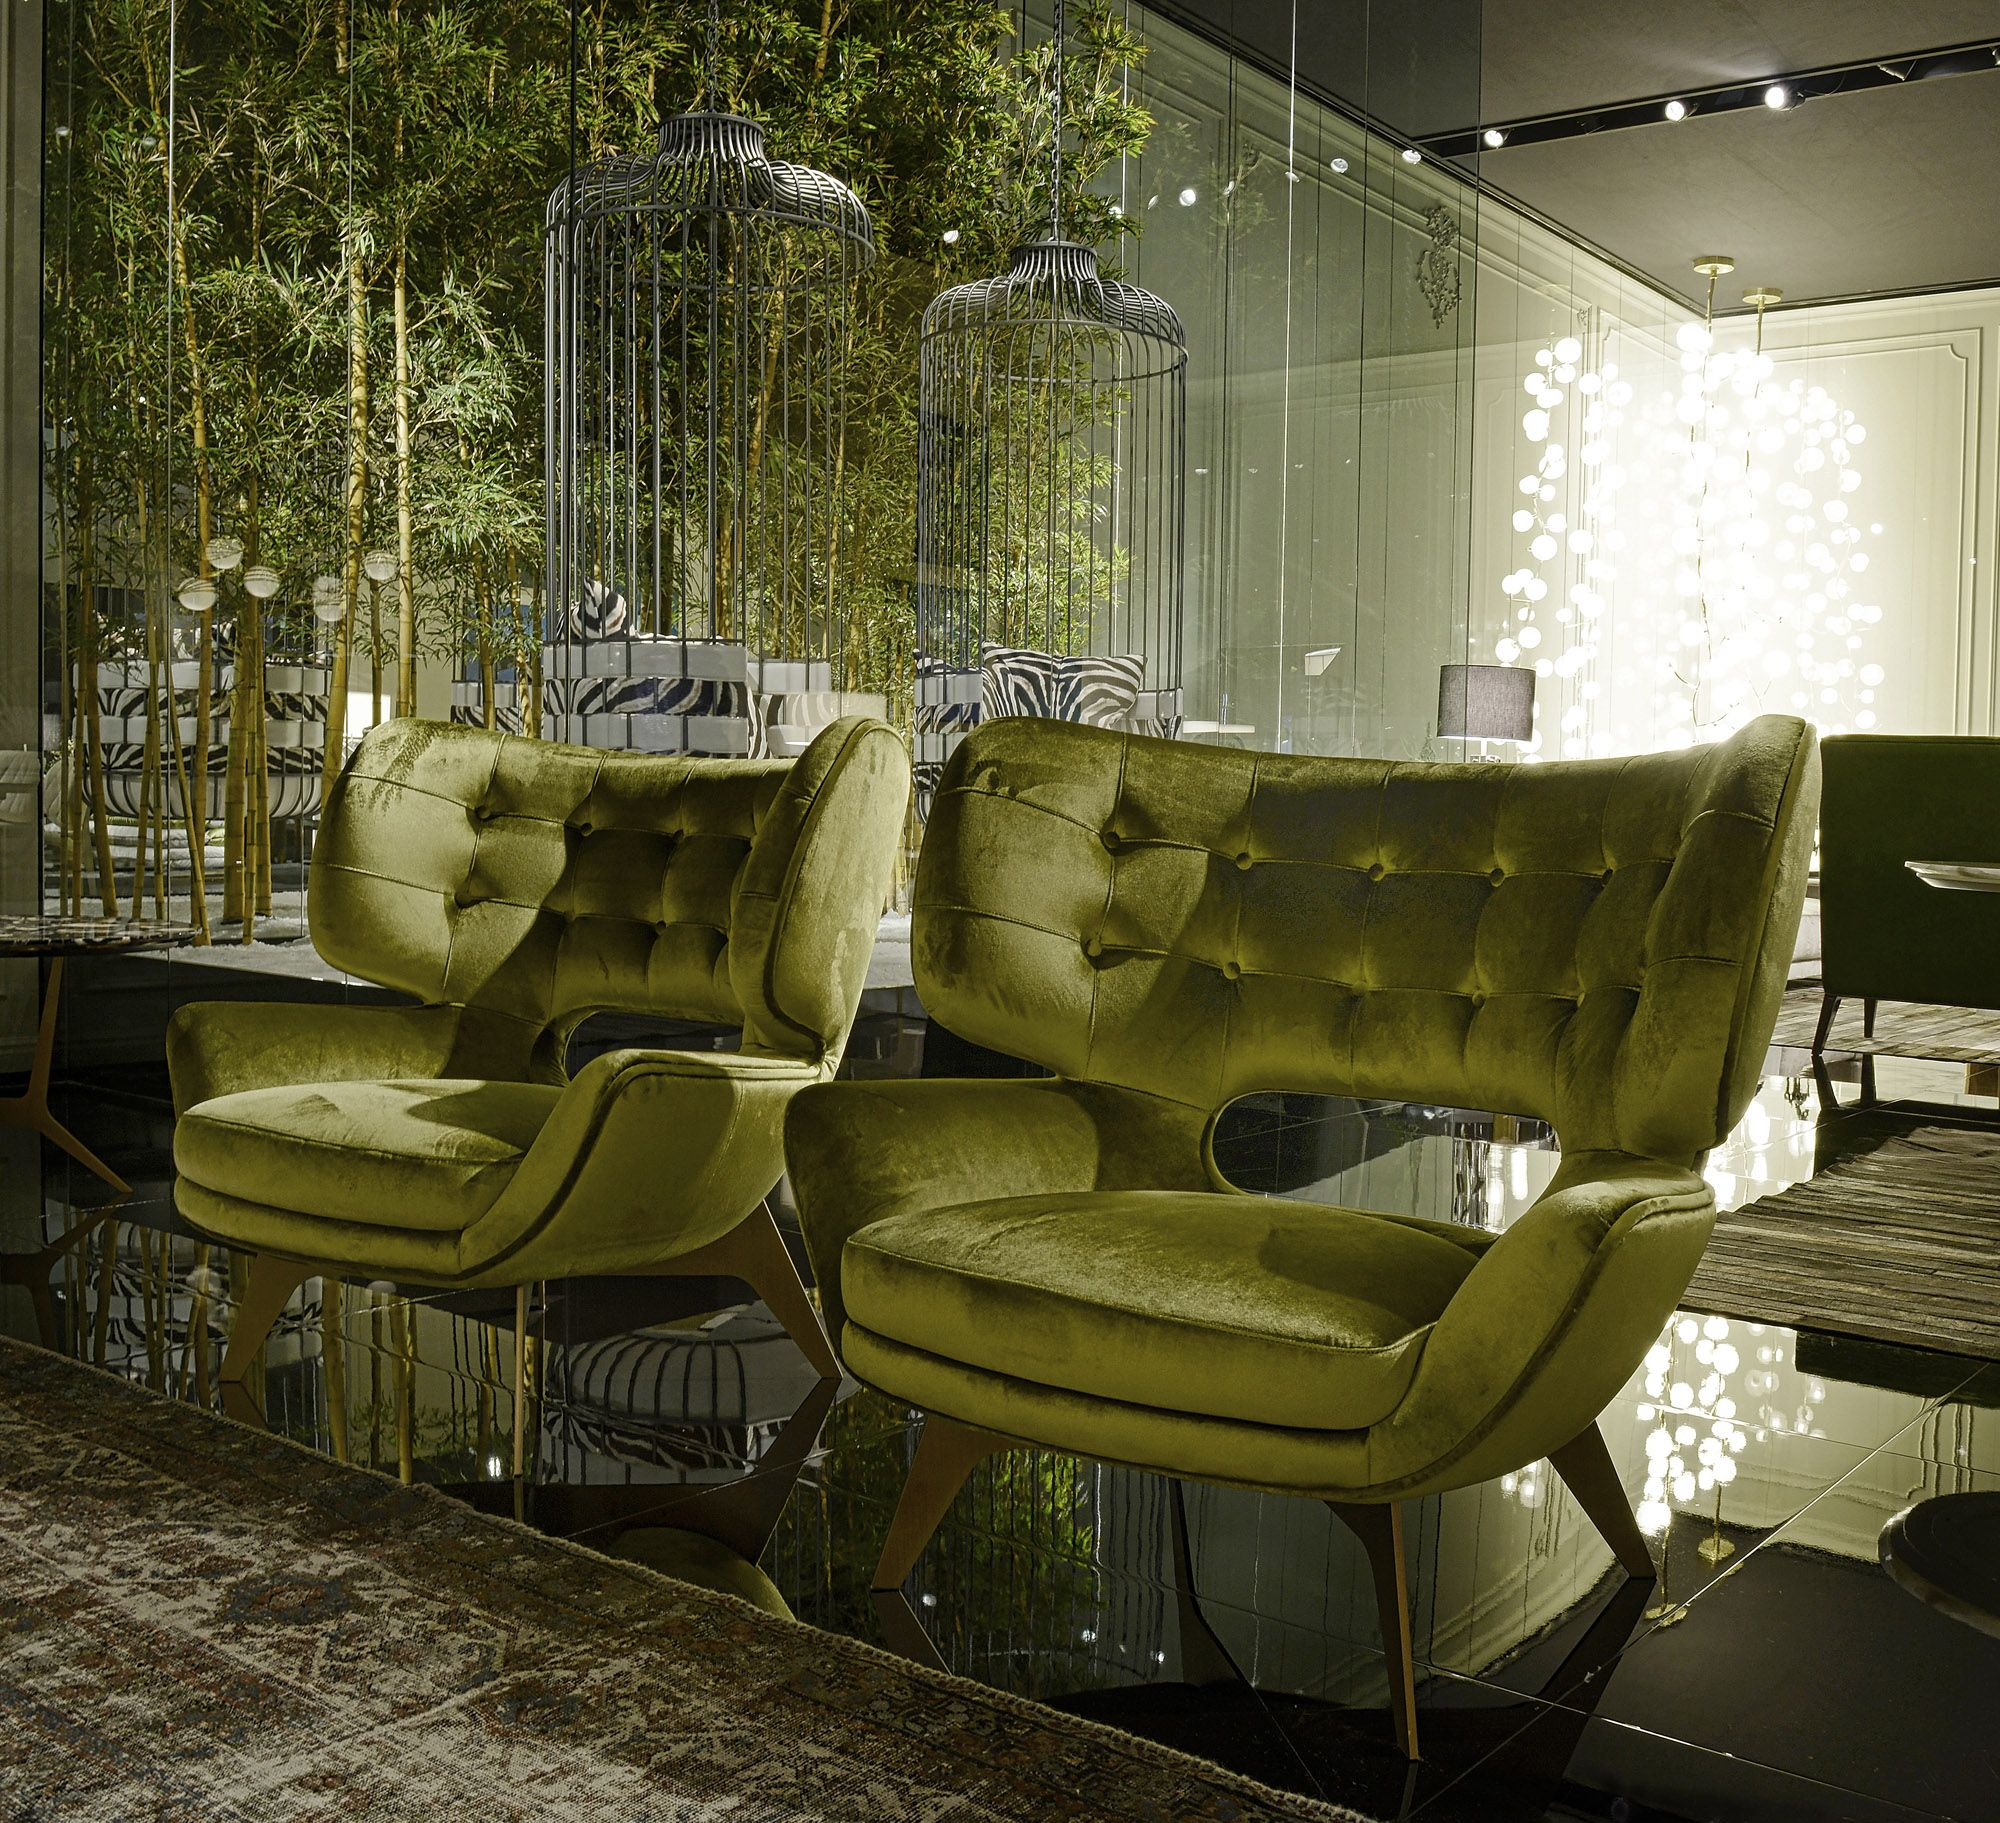 The Refreshing Interior Featuring Lime Accents Of The Neo Derm Medical Aesthetic Center Hotel Interior Design Interior Trending Decor